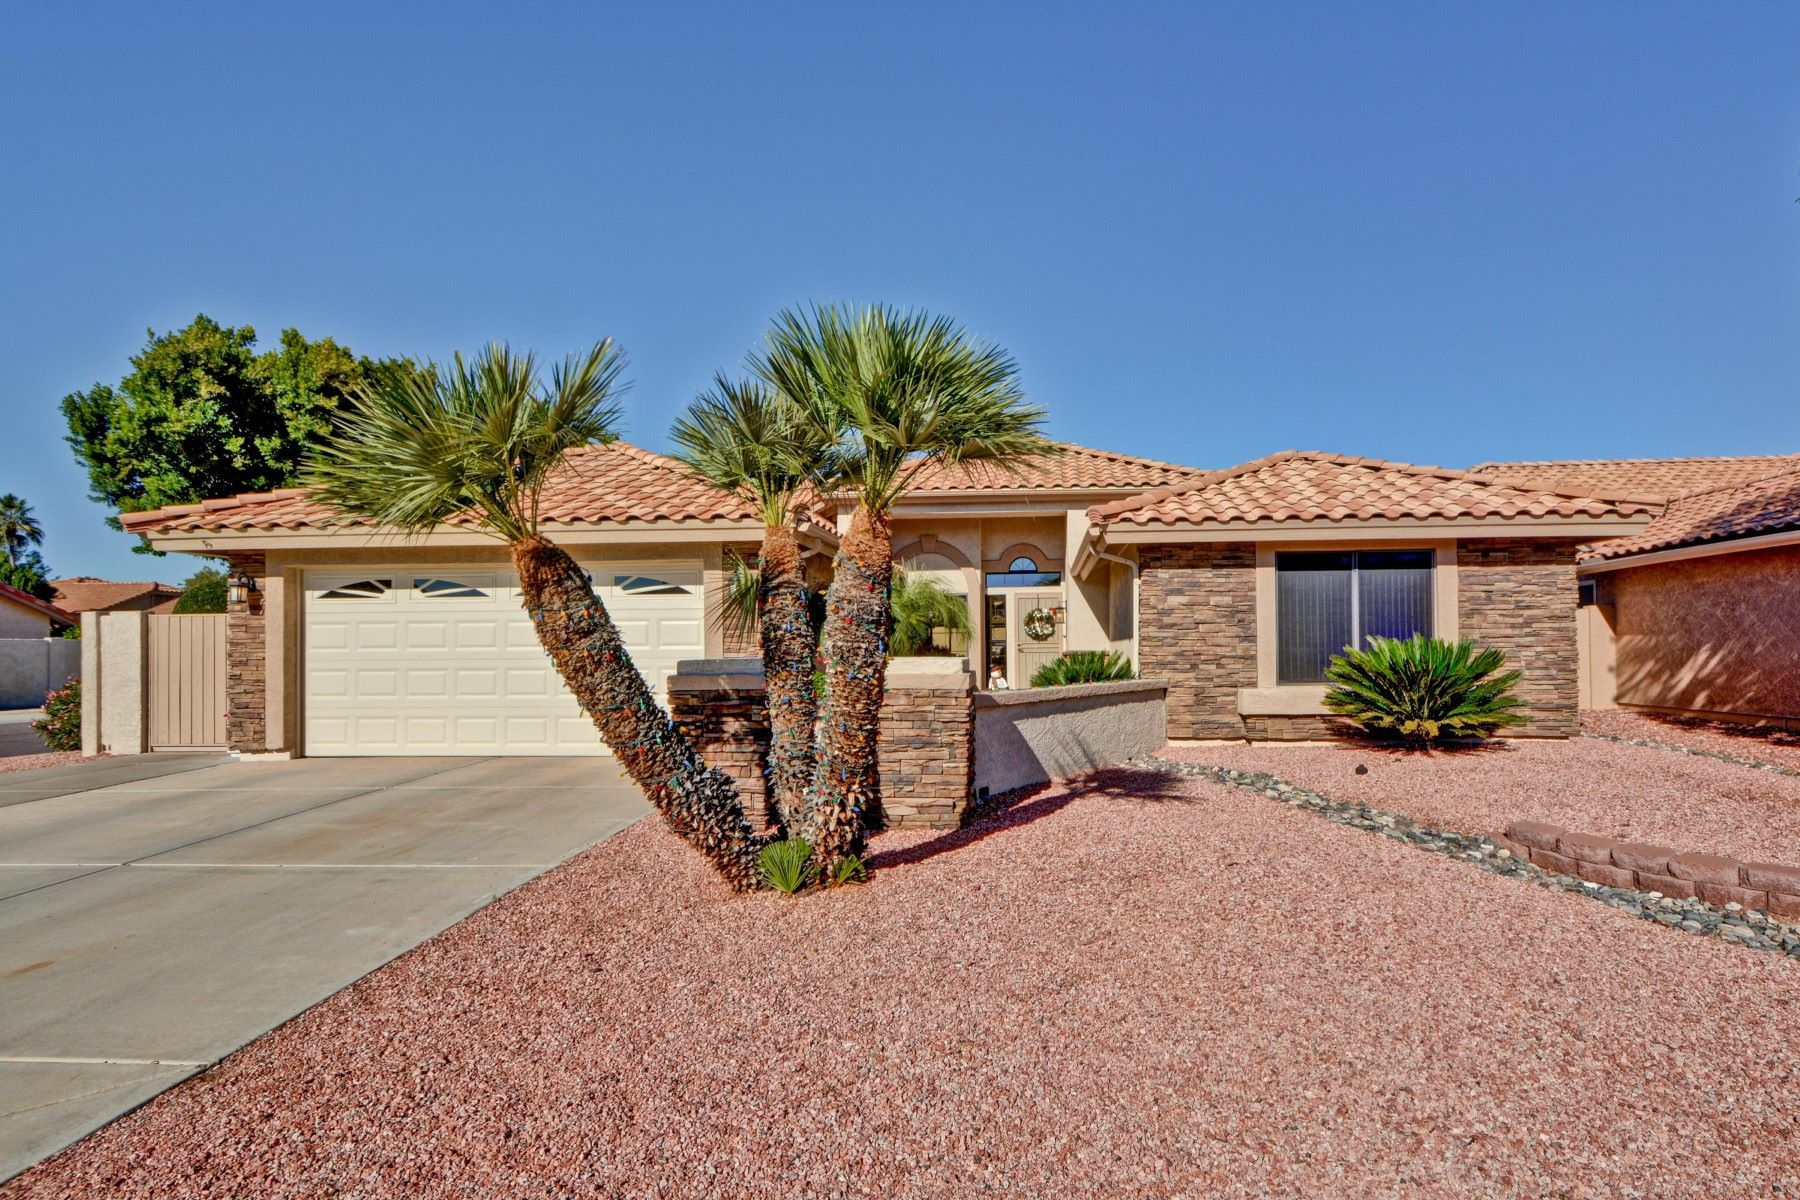 Single Family Homes por un Venta en Pineridge at Westbrook Village 9118 W ORAIBI DR Peoria, Arizona 85382 Estados Unidos